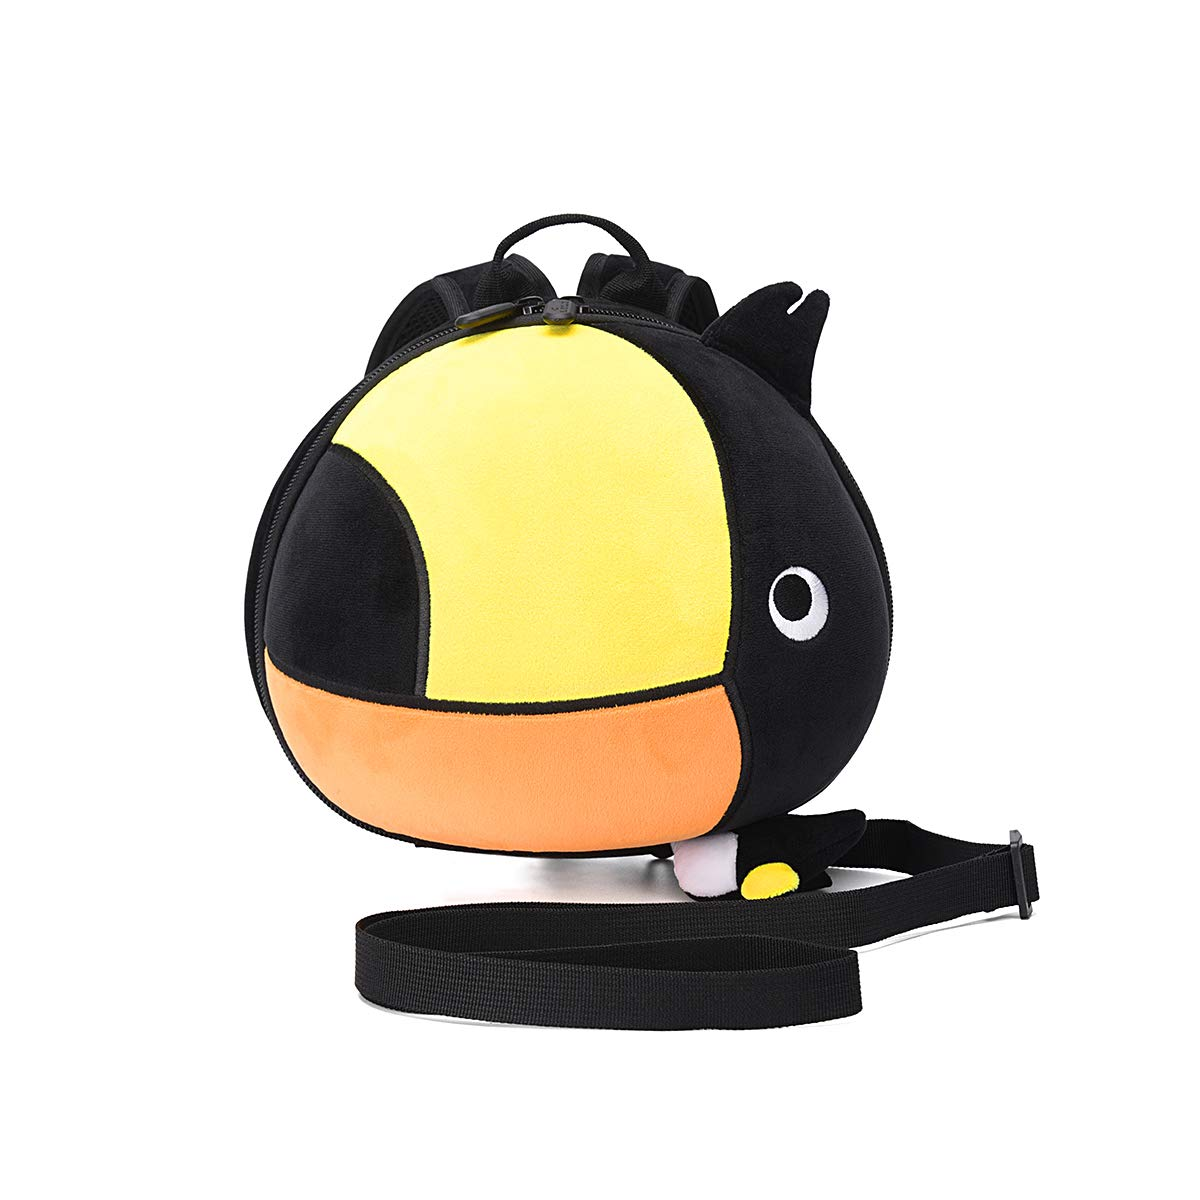 Toddler Backpack Leash for Baby,Child Backpack Harness,Plush Backpack with Leash for Girl,Kids Tether Backpack,Baby Anti Lost Harness Backpack (Toucan)